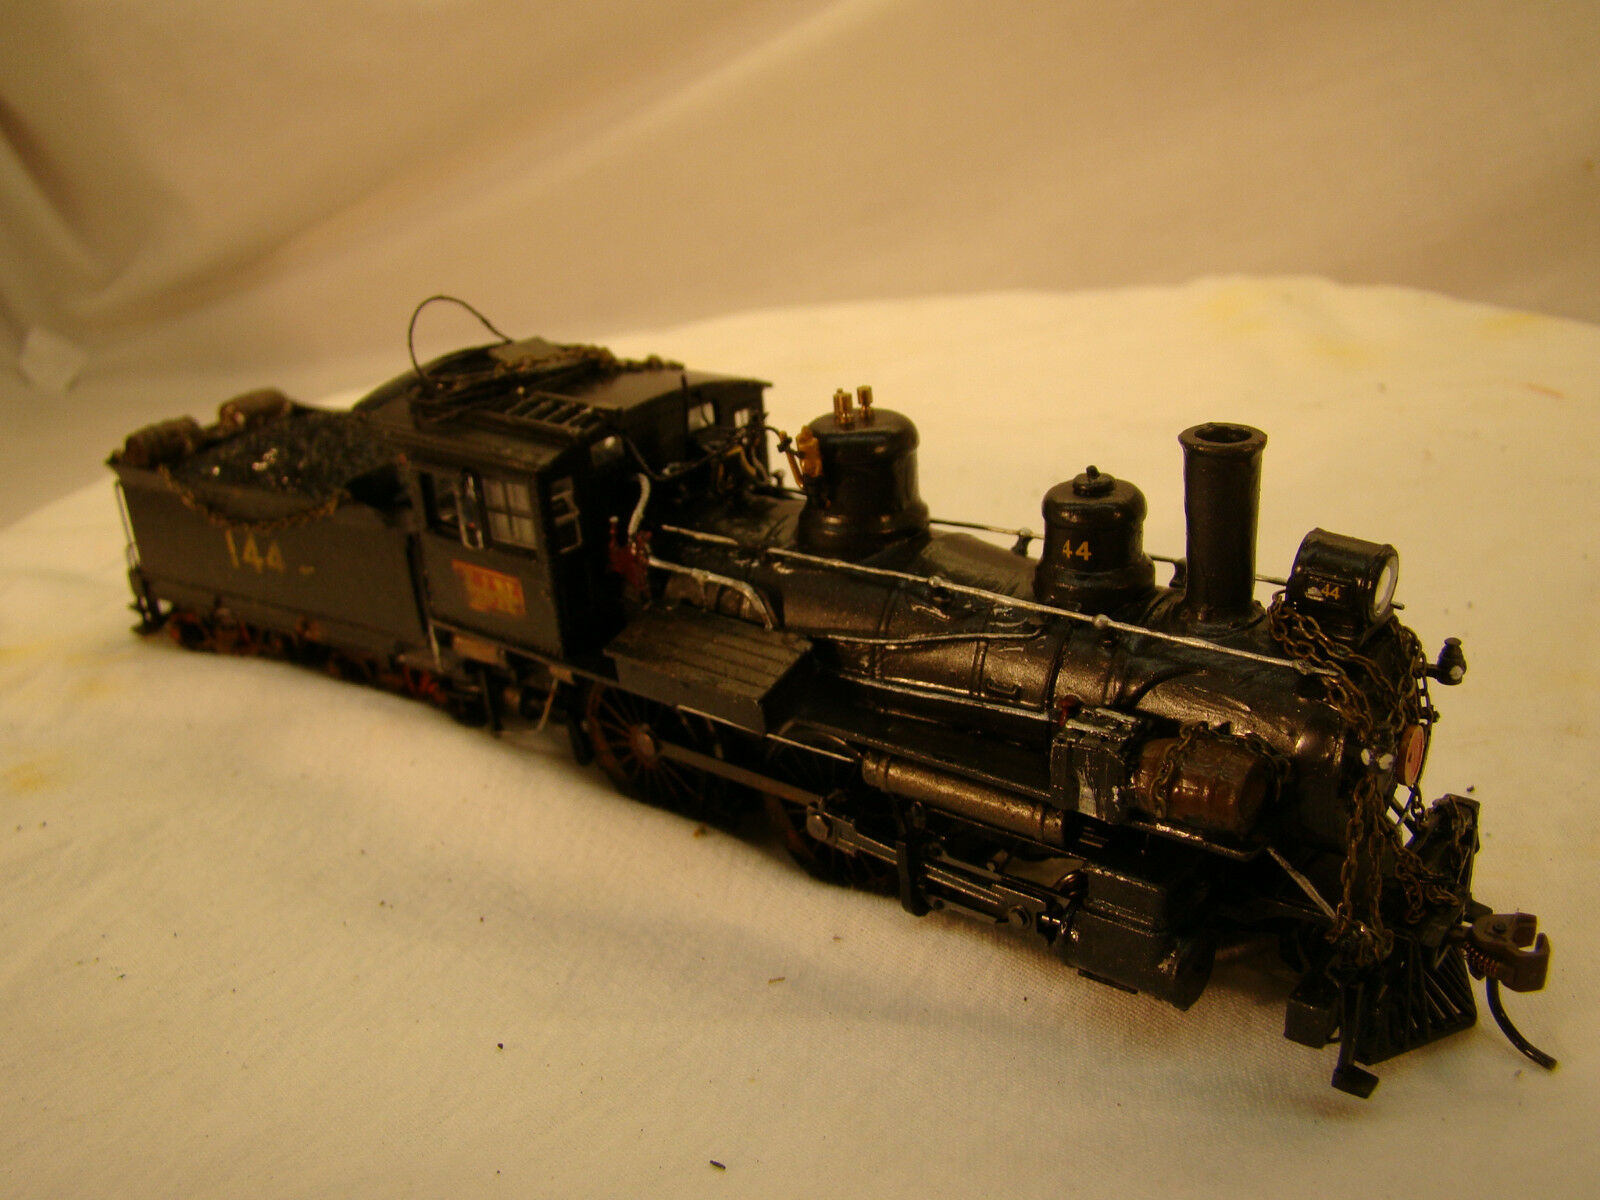 Bachmann 4-4-0 4-4-0 4-4-0 Logging Steam Locomotive - DCC and sound onboard-custom weatherosso cef51c